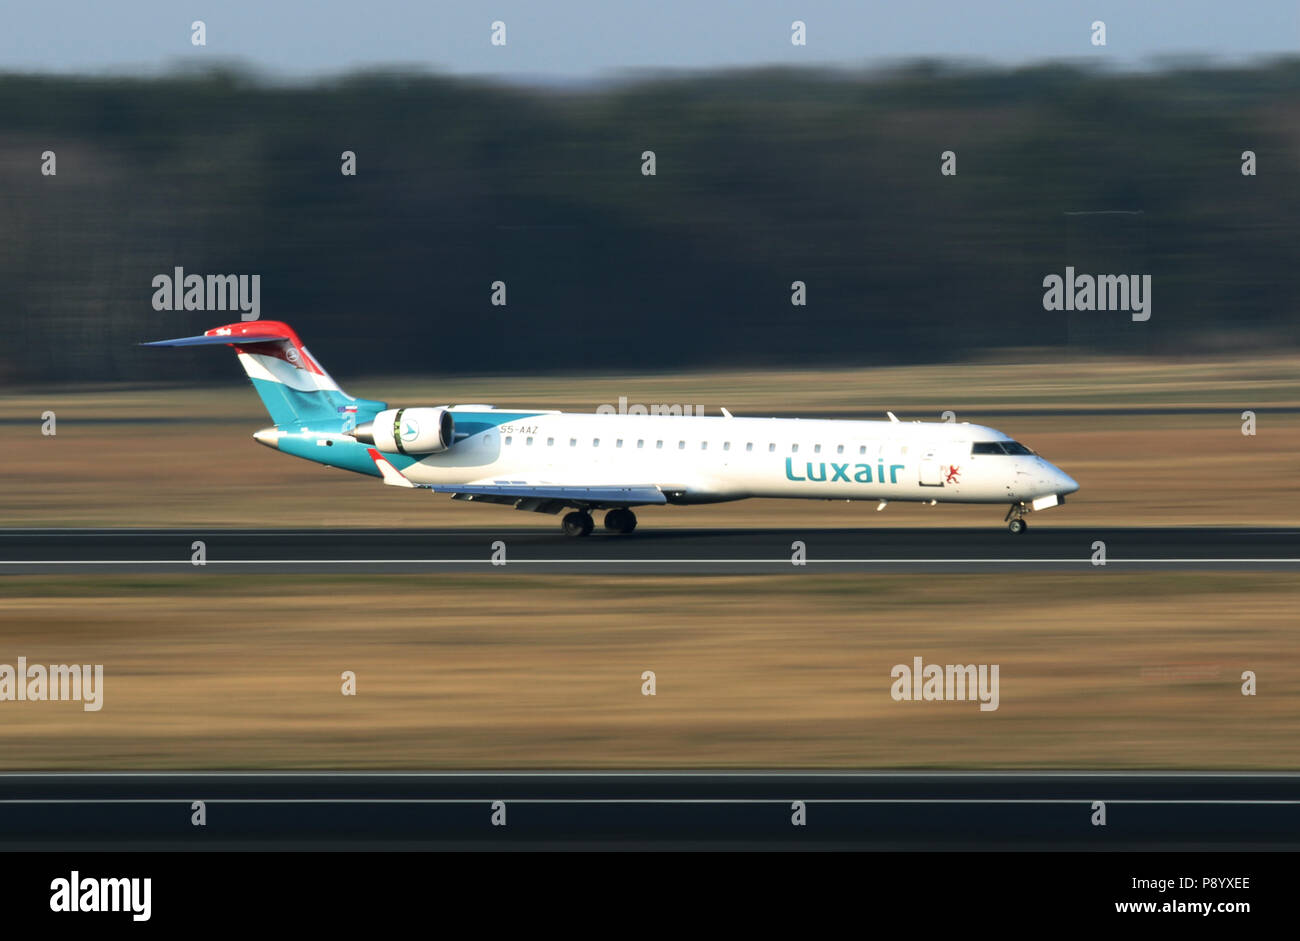 Berlin, Germany, Bombardier CRJ-700ER of the airline Luxair on the runway of the airport Berlin-Tegel - Stock Image